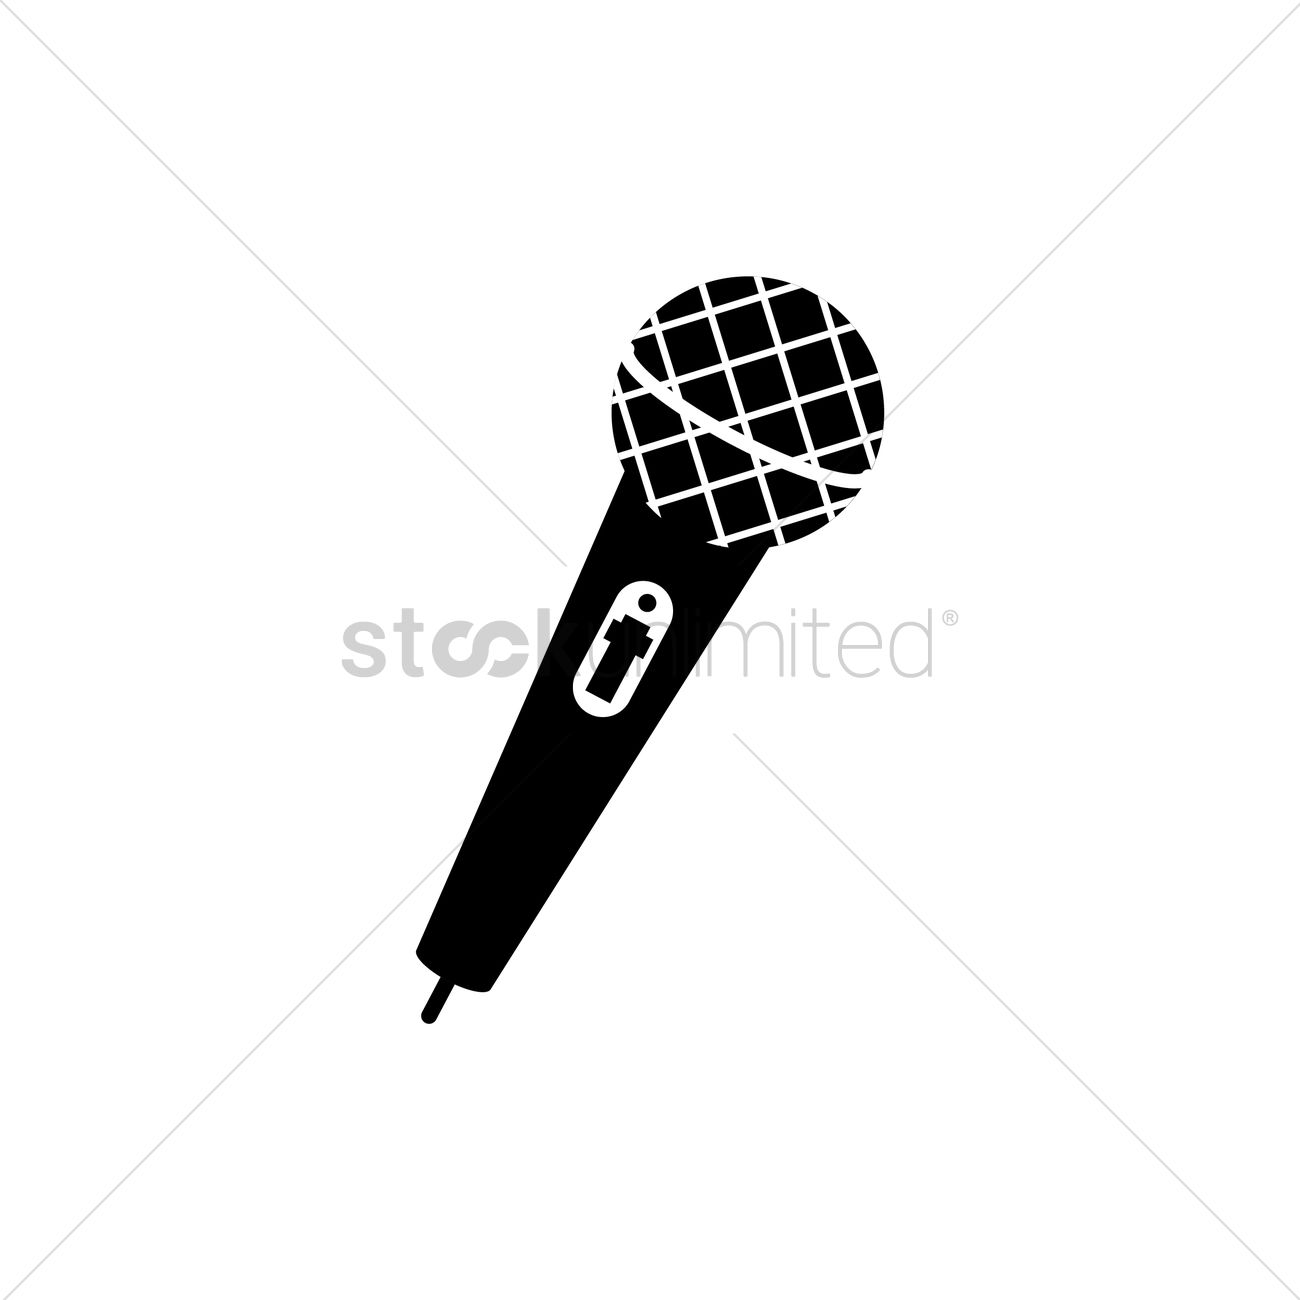 1300x1300 Free Silhouette Of Microphone Vector Image